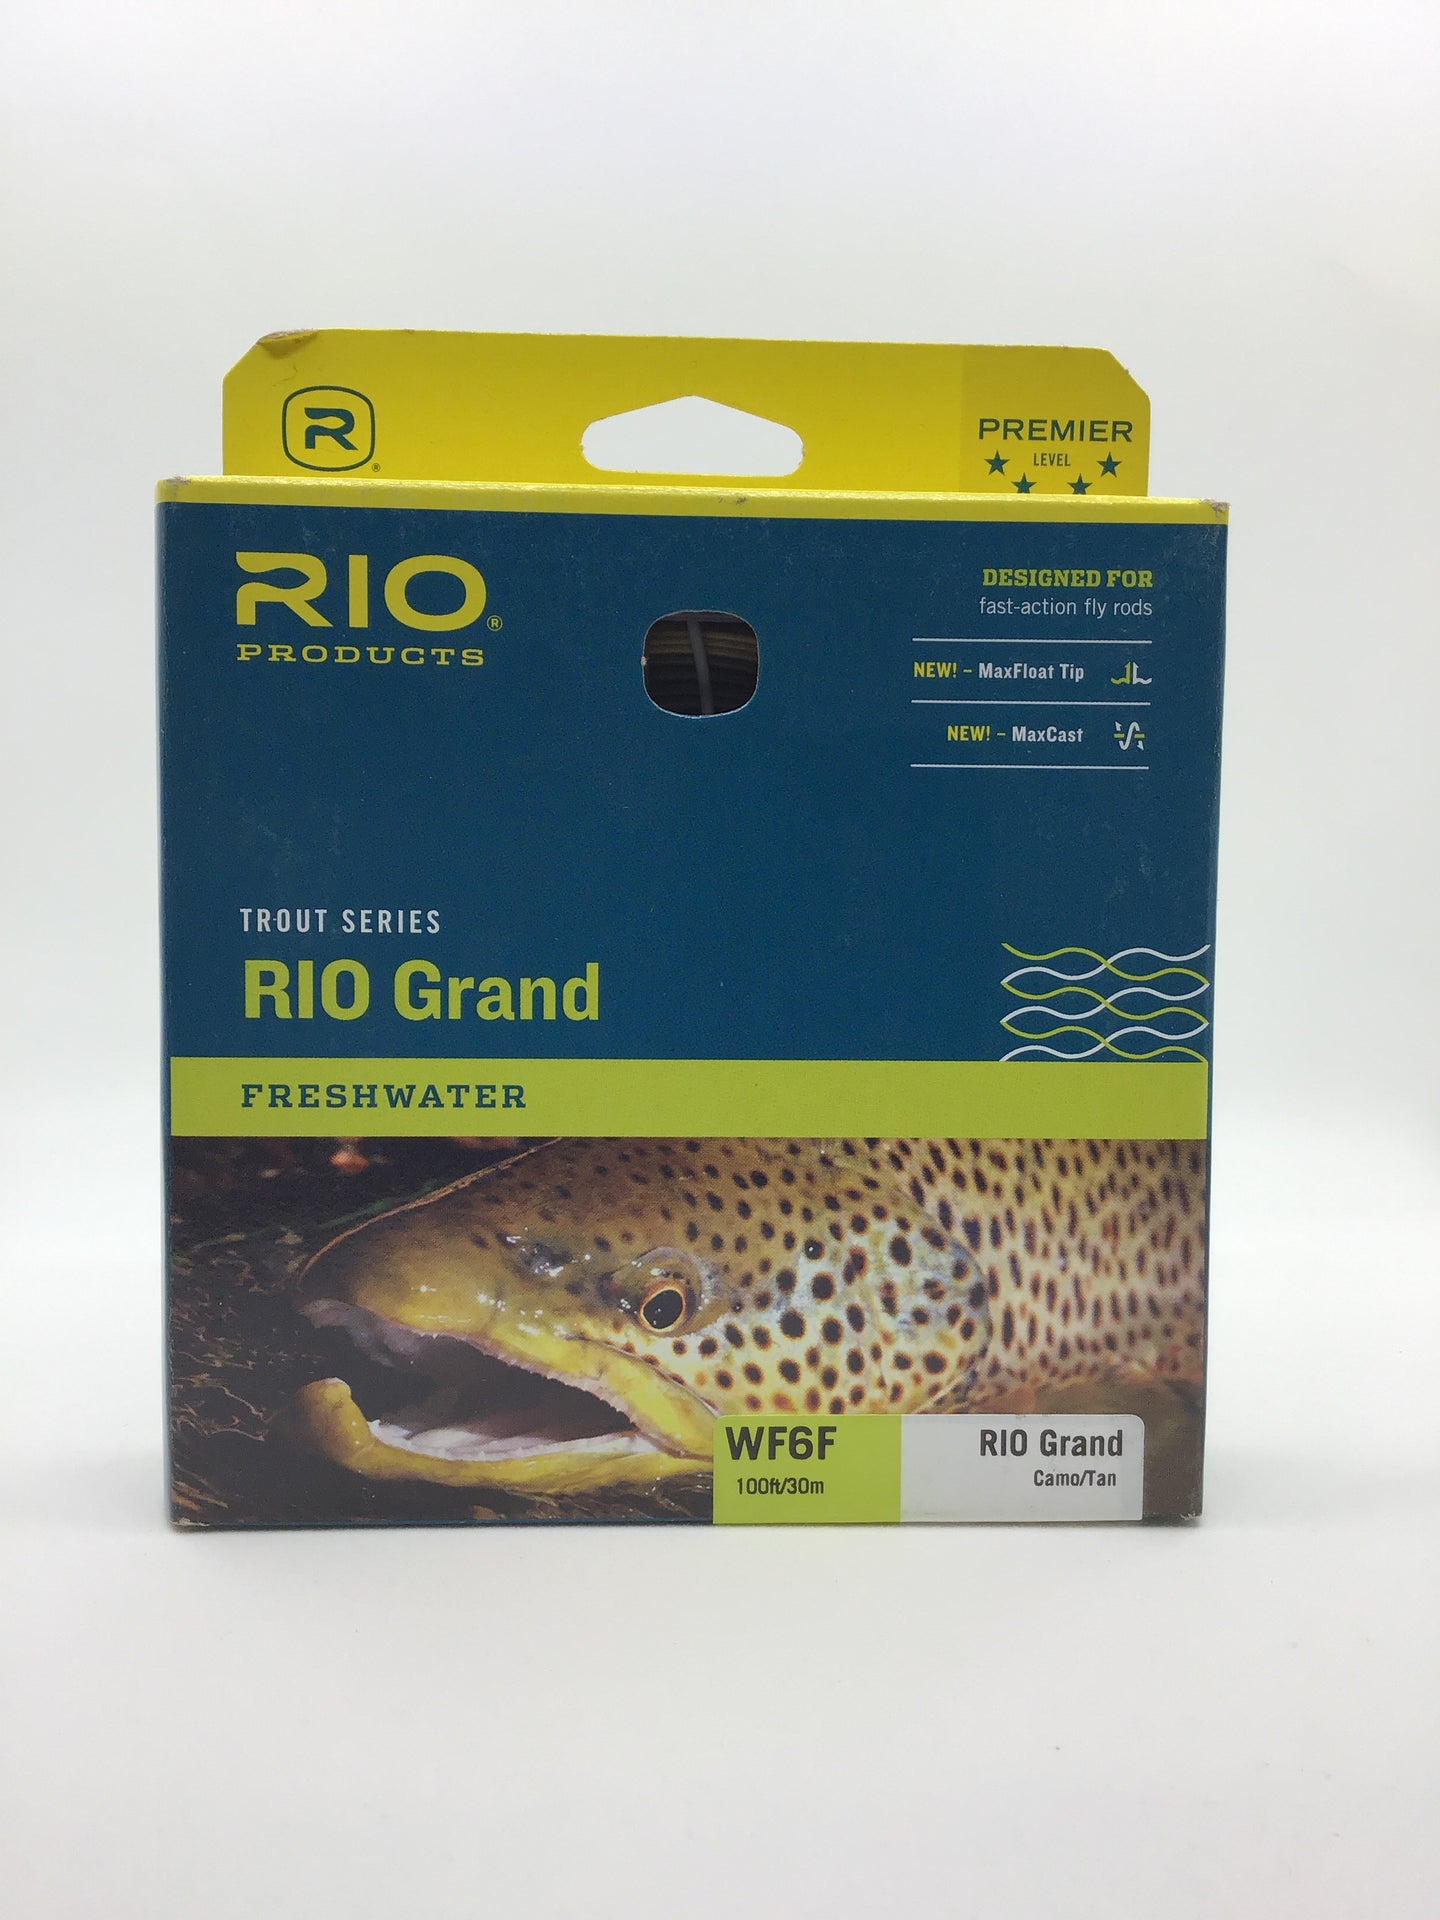 RIO Grand Freshwater Fly Line (Camo/Tan)